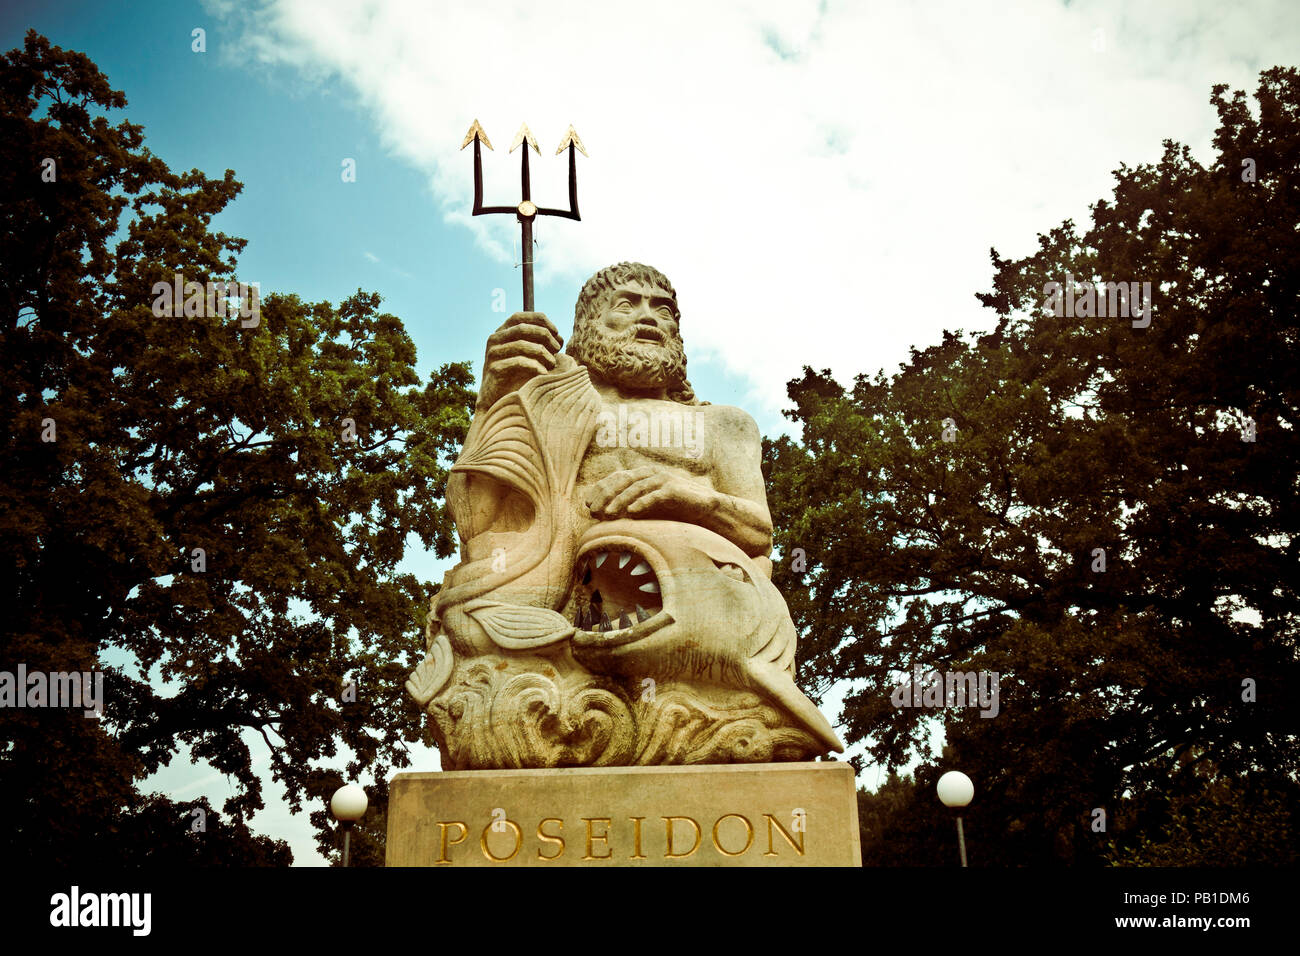 statue of Poseidon god of sea and other waters - Stock Image